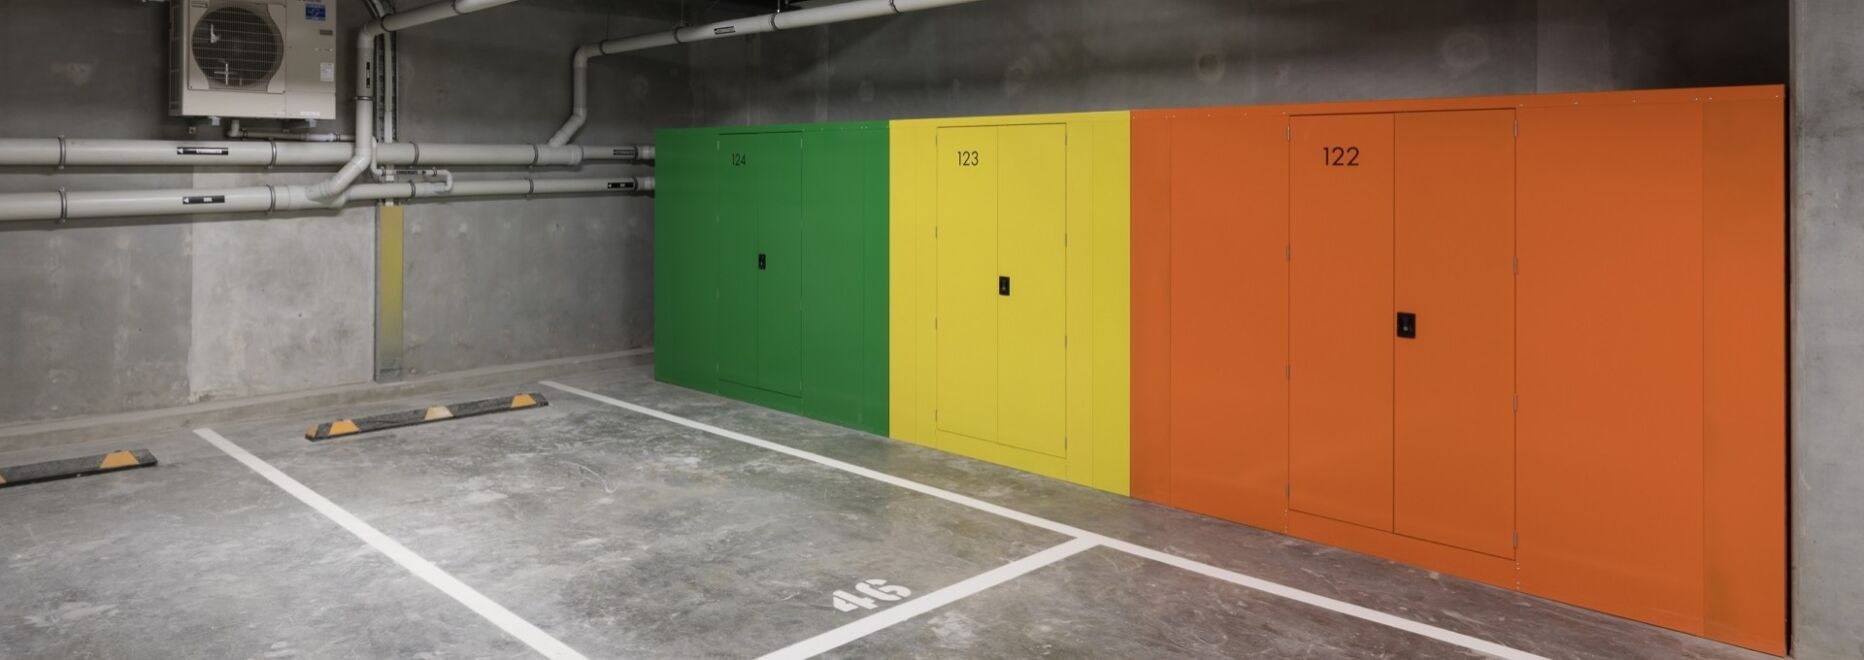 projects st marks lockers